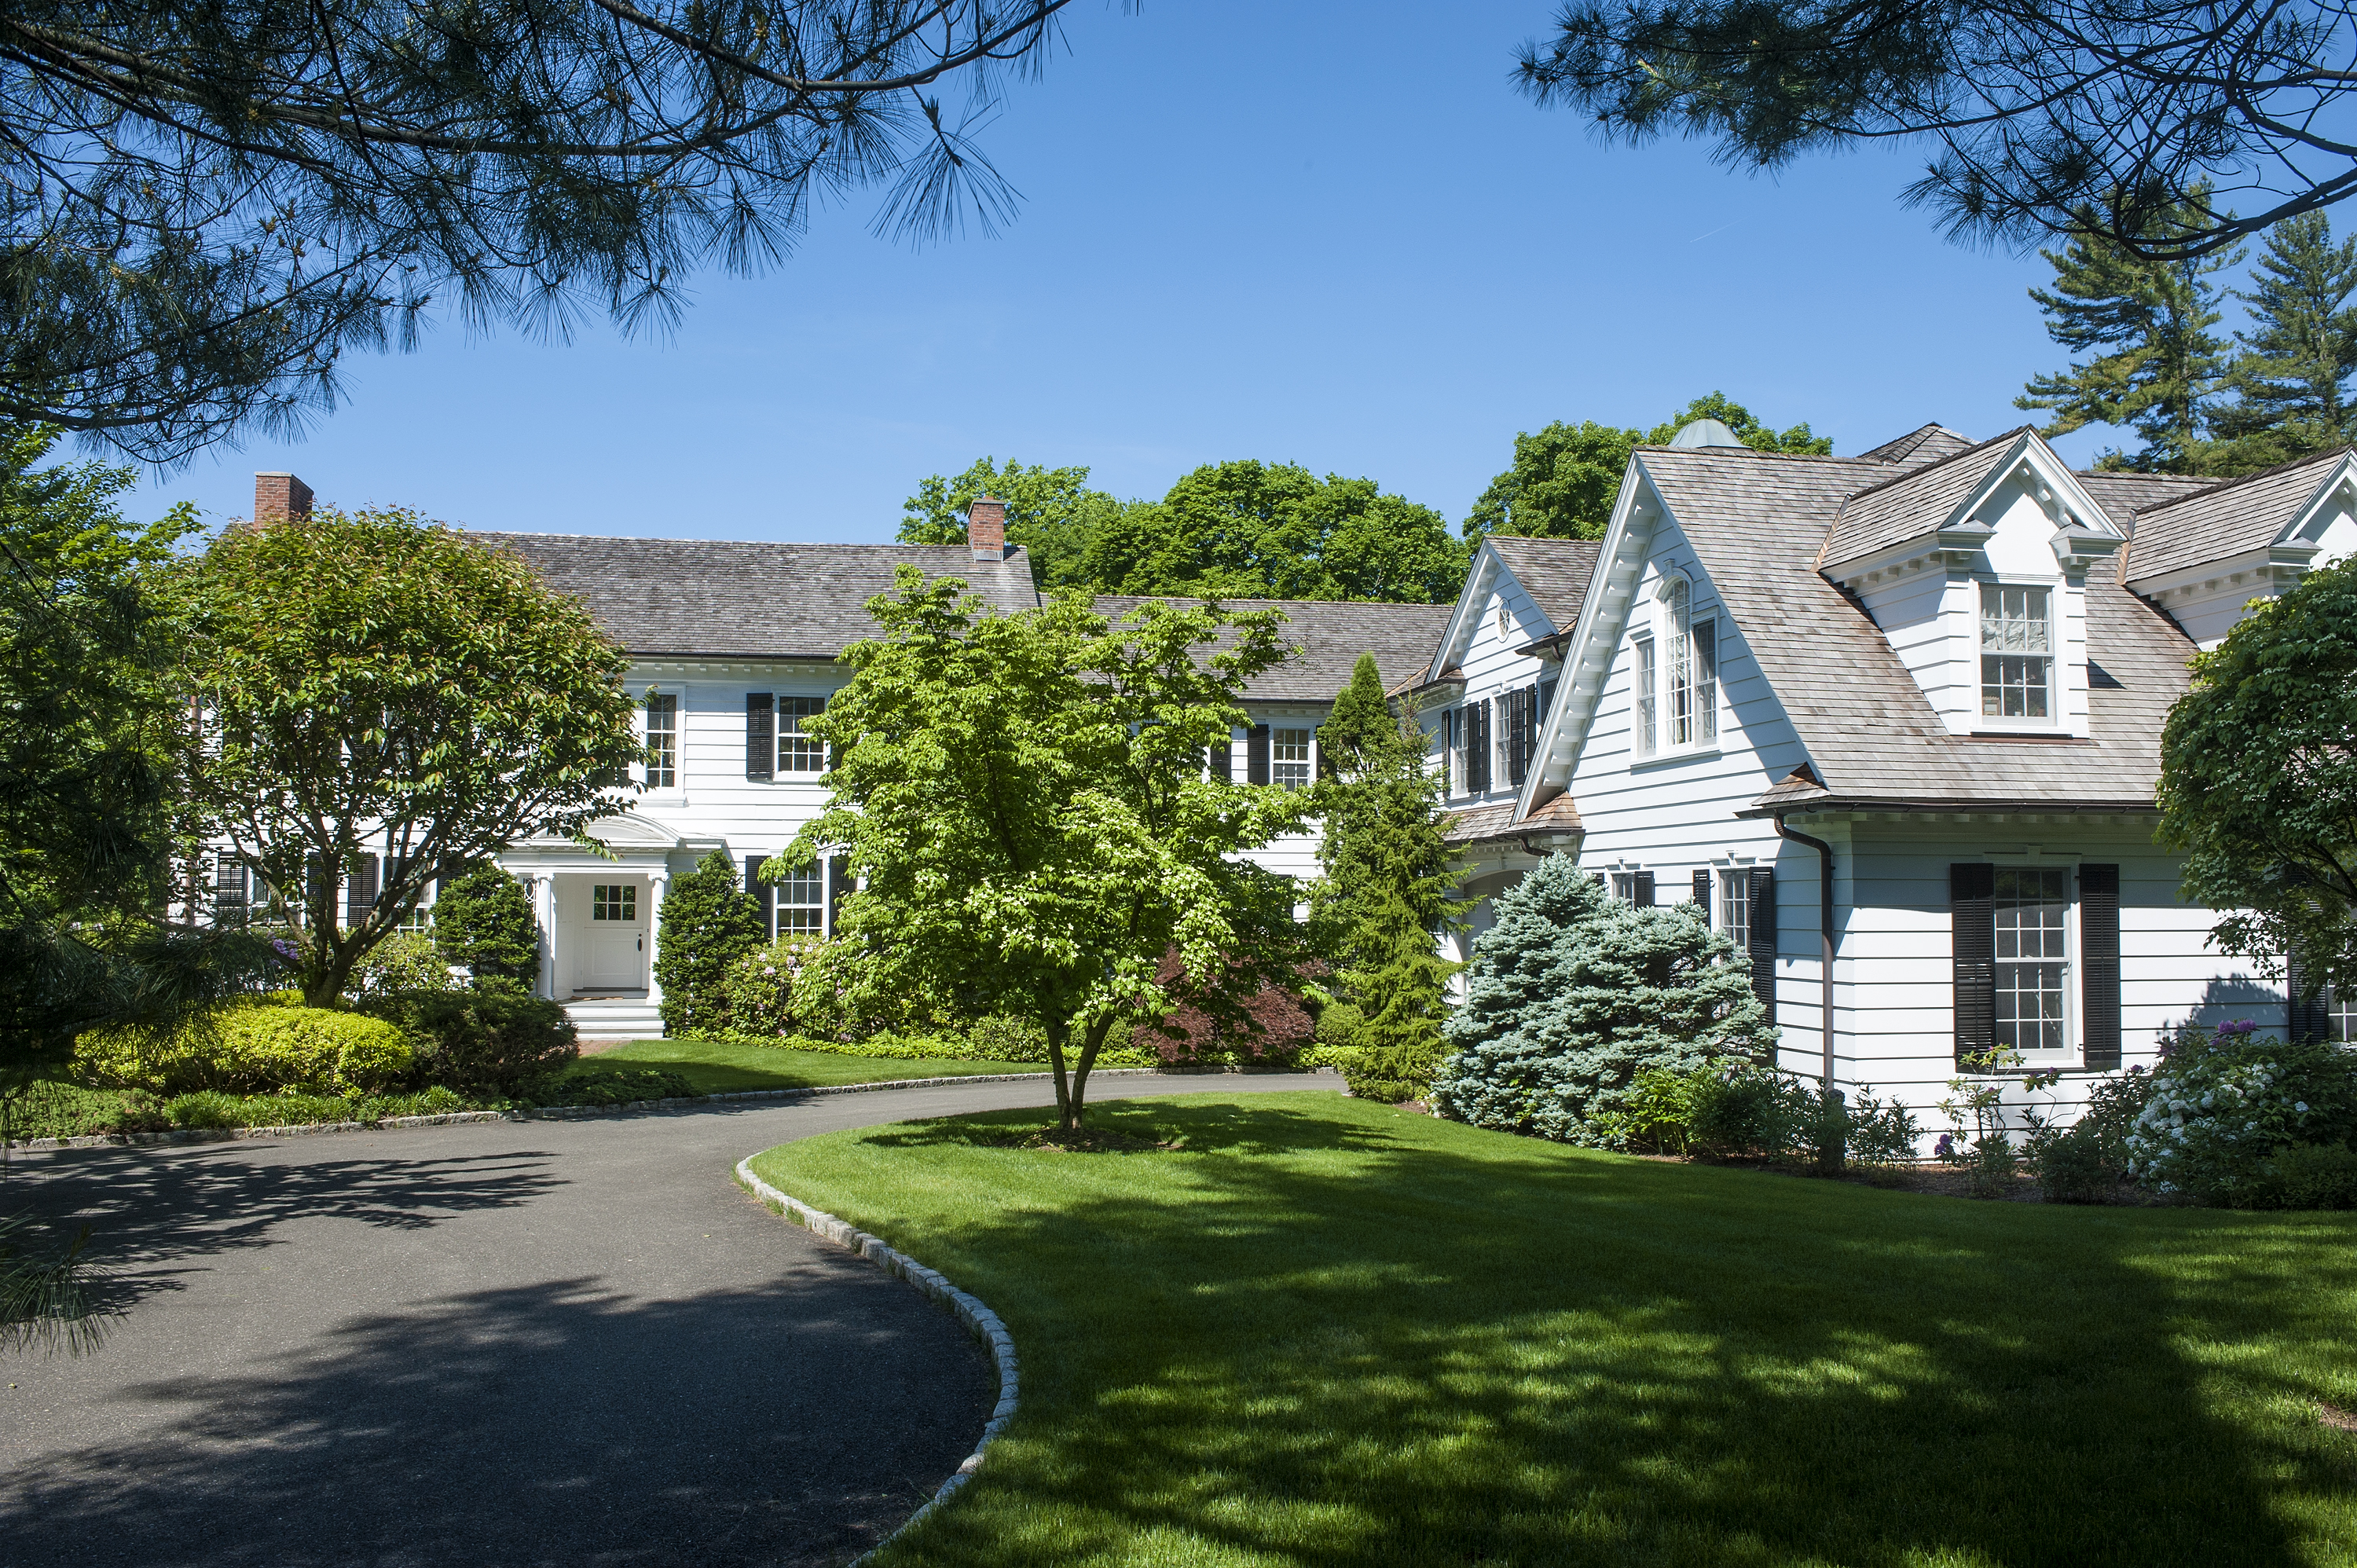 Single Family Home for Sale at Landmark New Canaan Estate 648 Smith Ridge Road New Canaan, Connecticut, 06840 United States